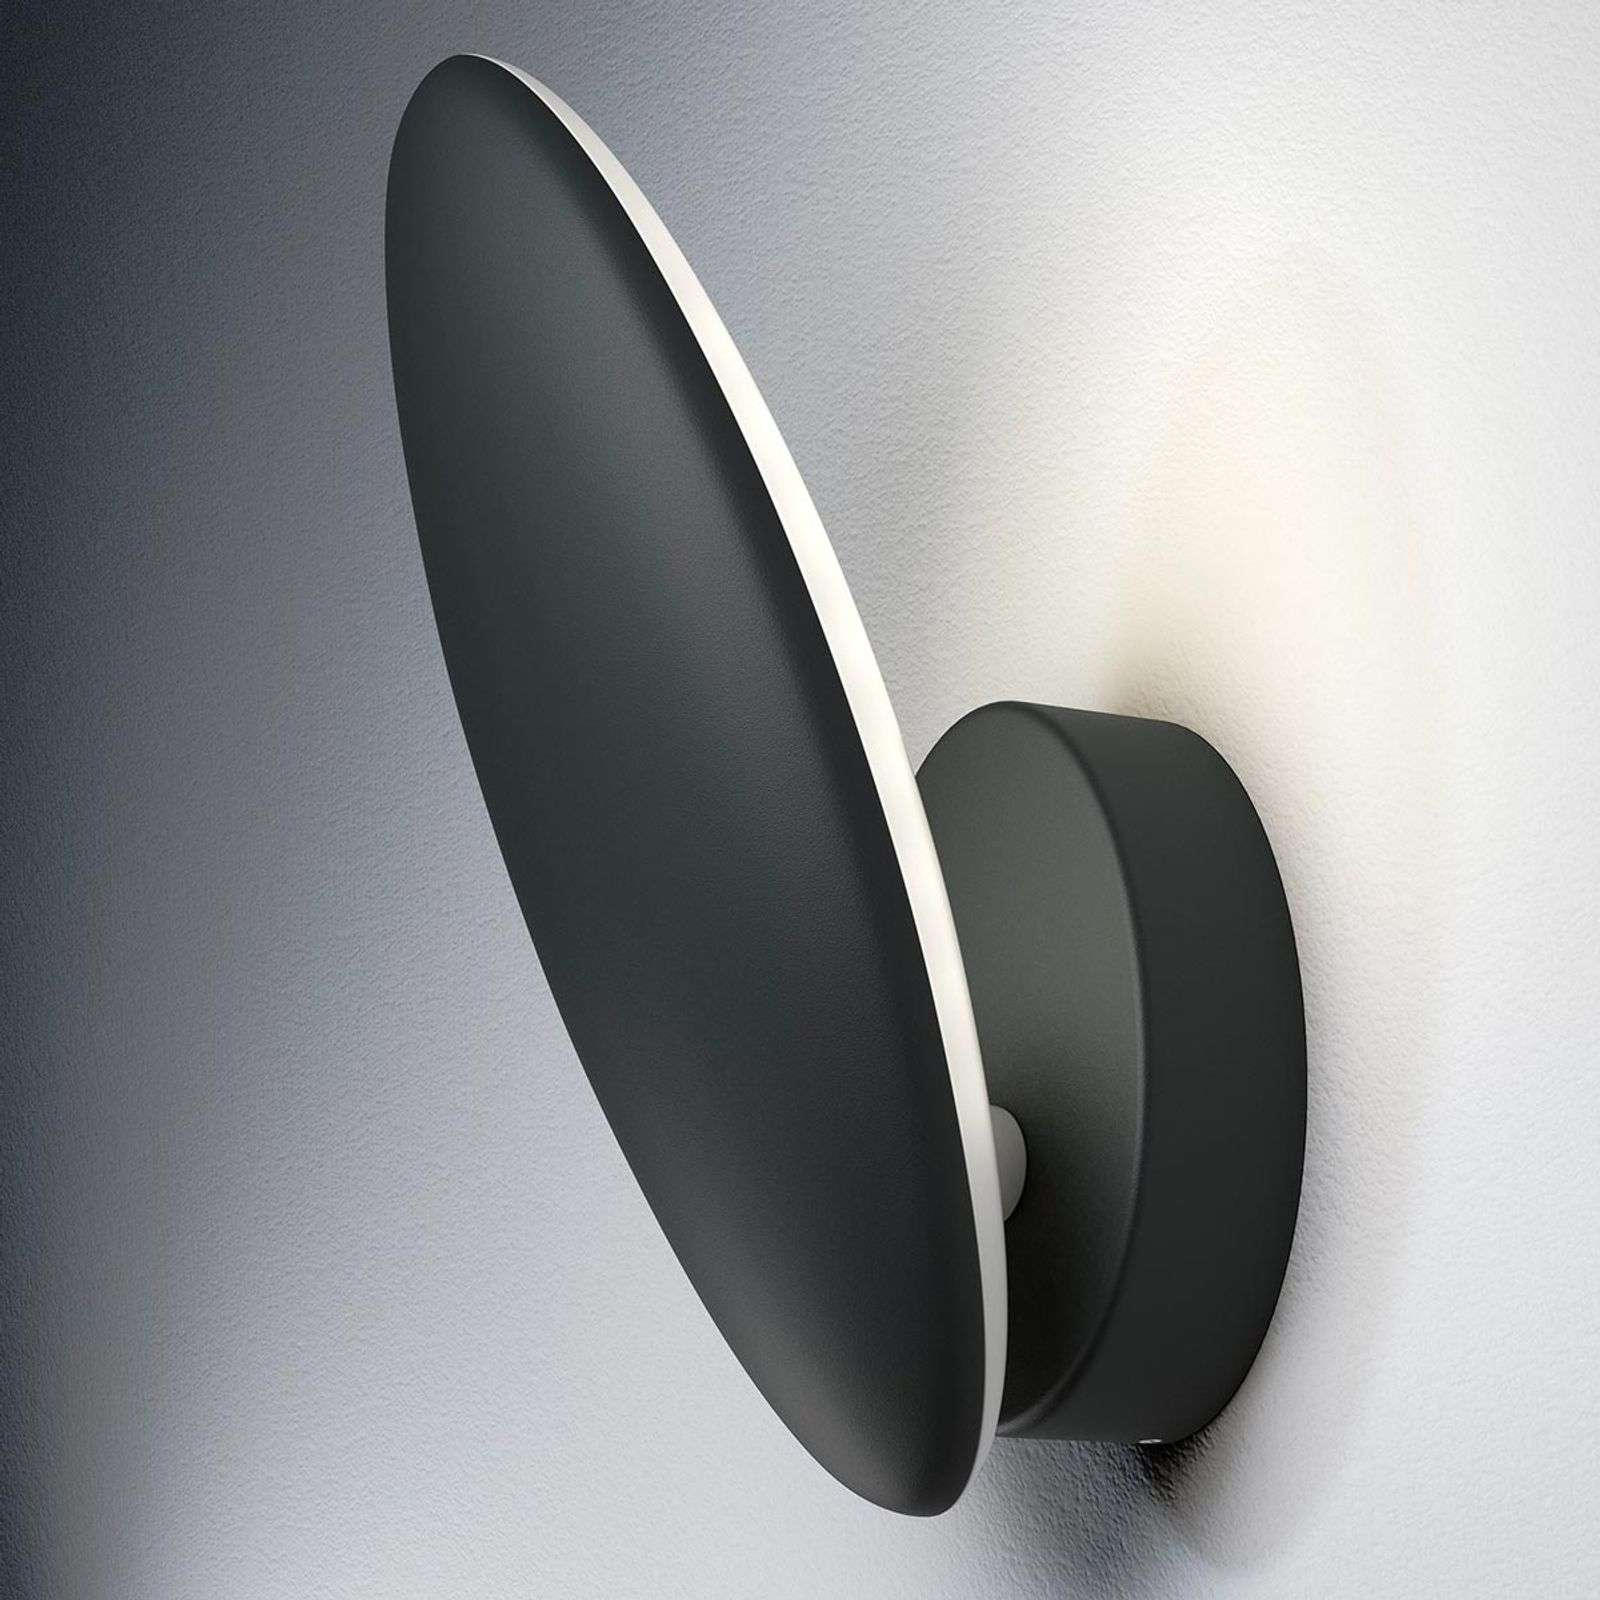 Endura Style Wallwasher - LED buitenwandlamp